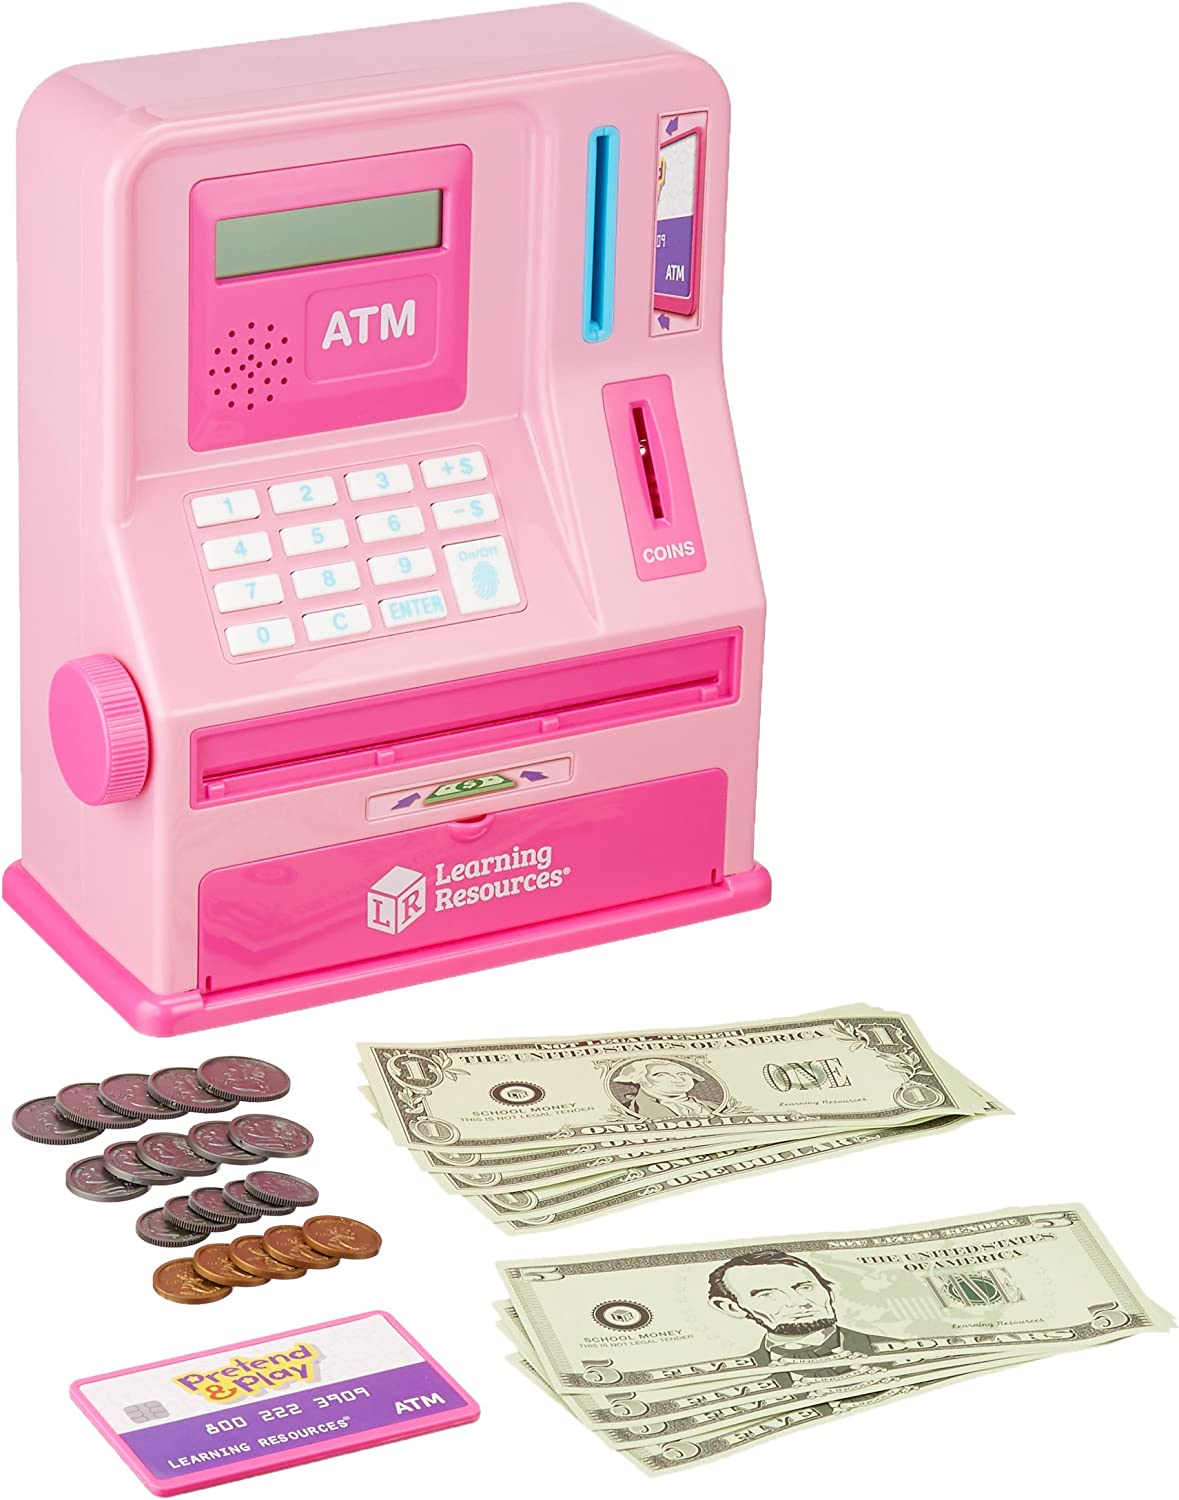 Learning Resources Teaching ATM 32 At the price Pieces Pink Colorado Springs Mall Bank